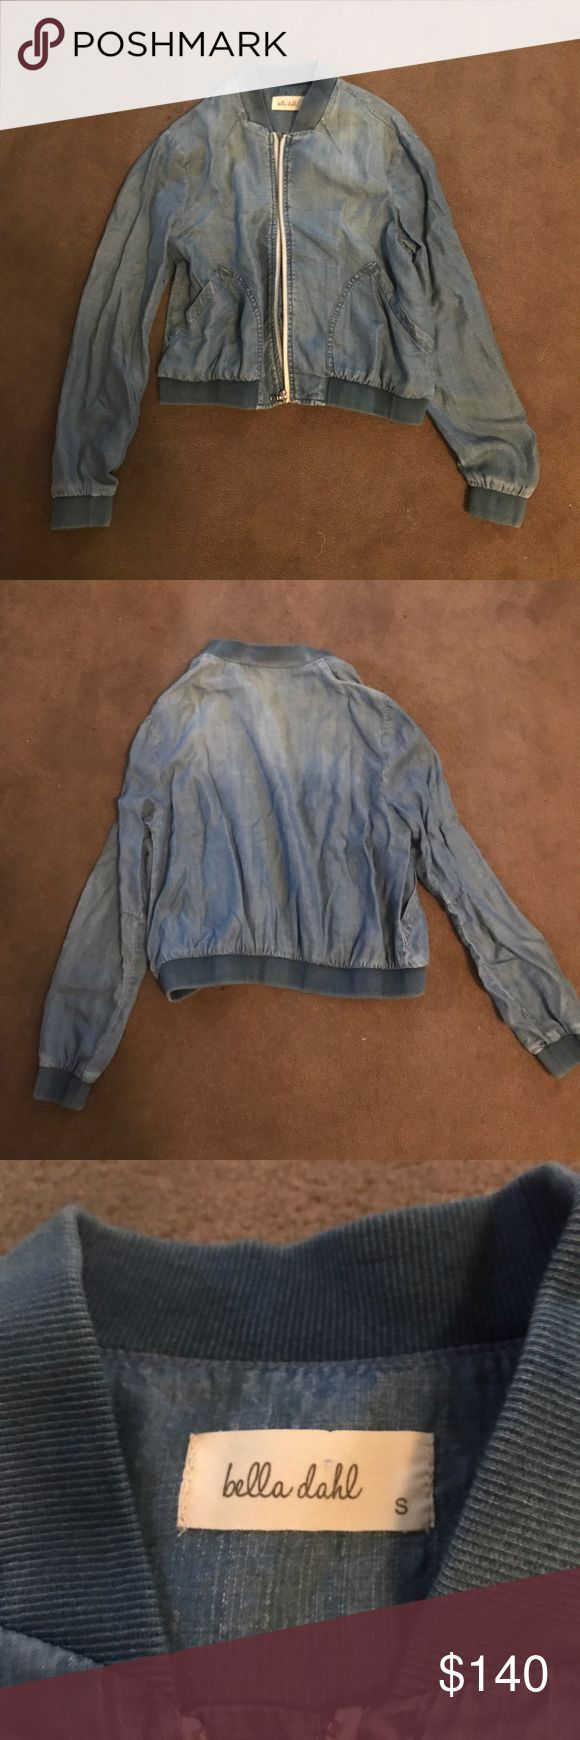 Della Dahl light denim zip up jacket Never worn. Very comfy. Very light. Great for spring and summer! Bella Dahl Jackets & Coats